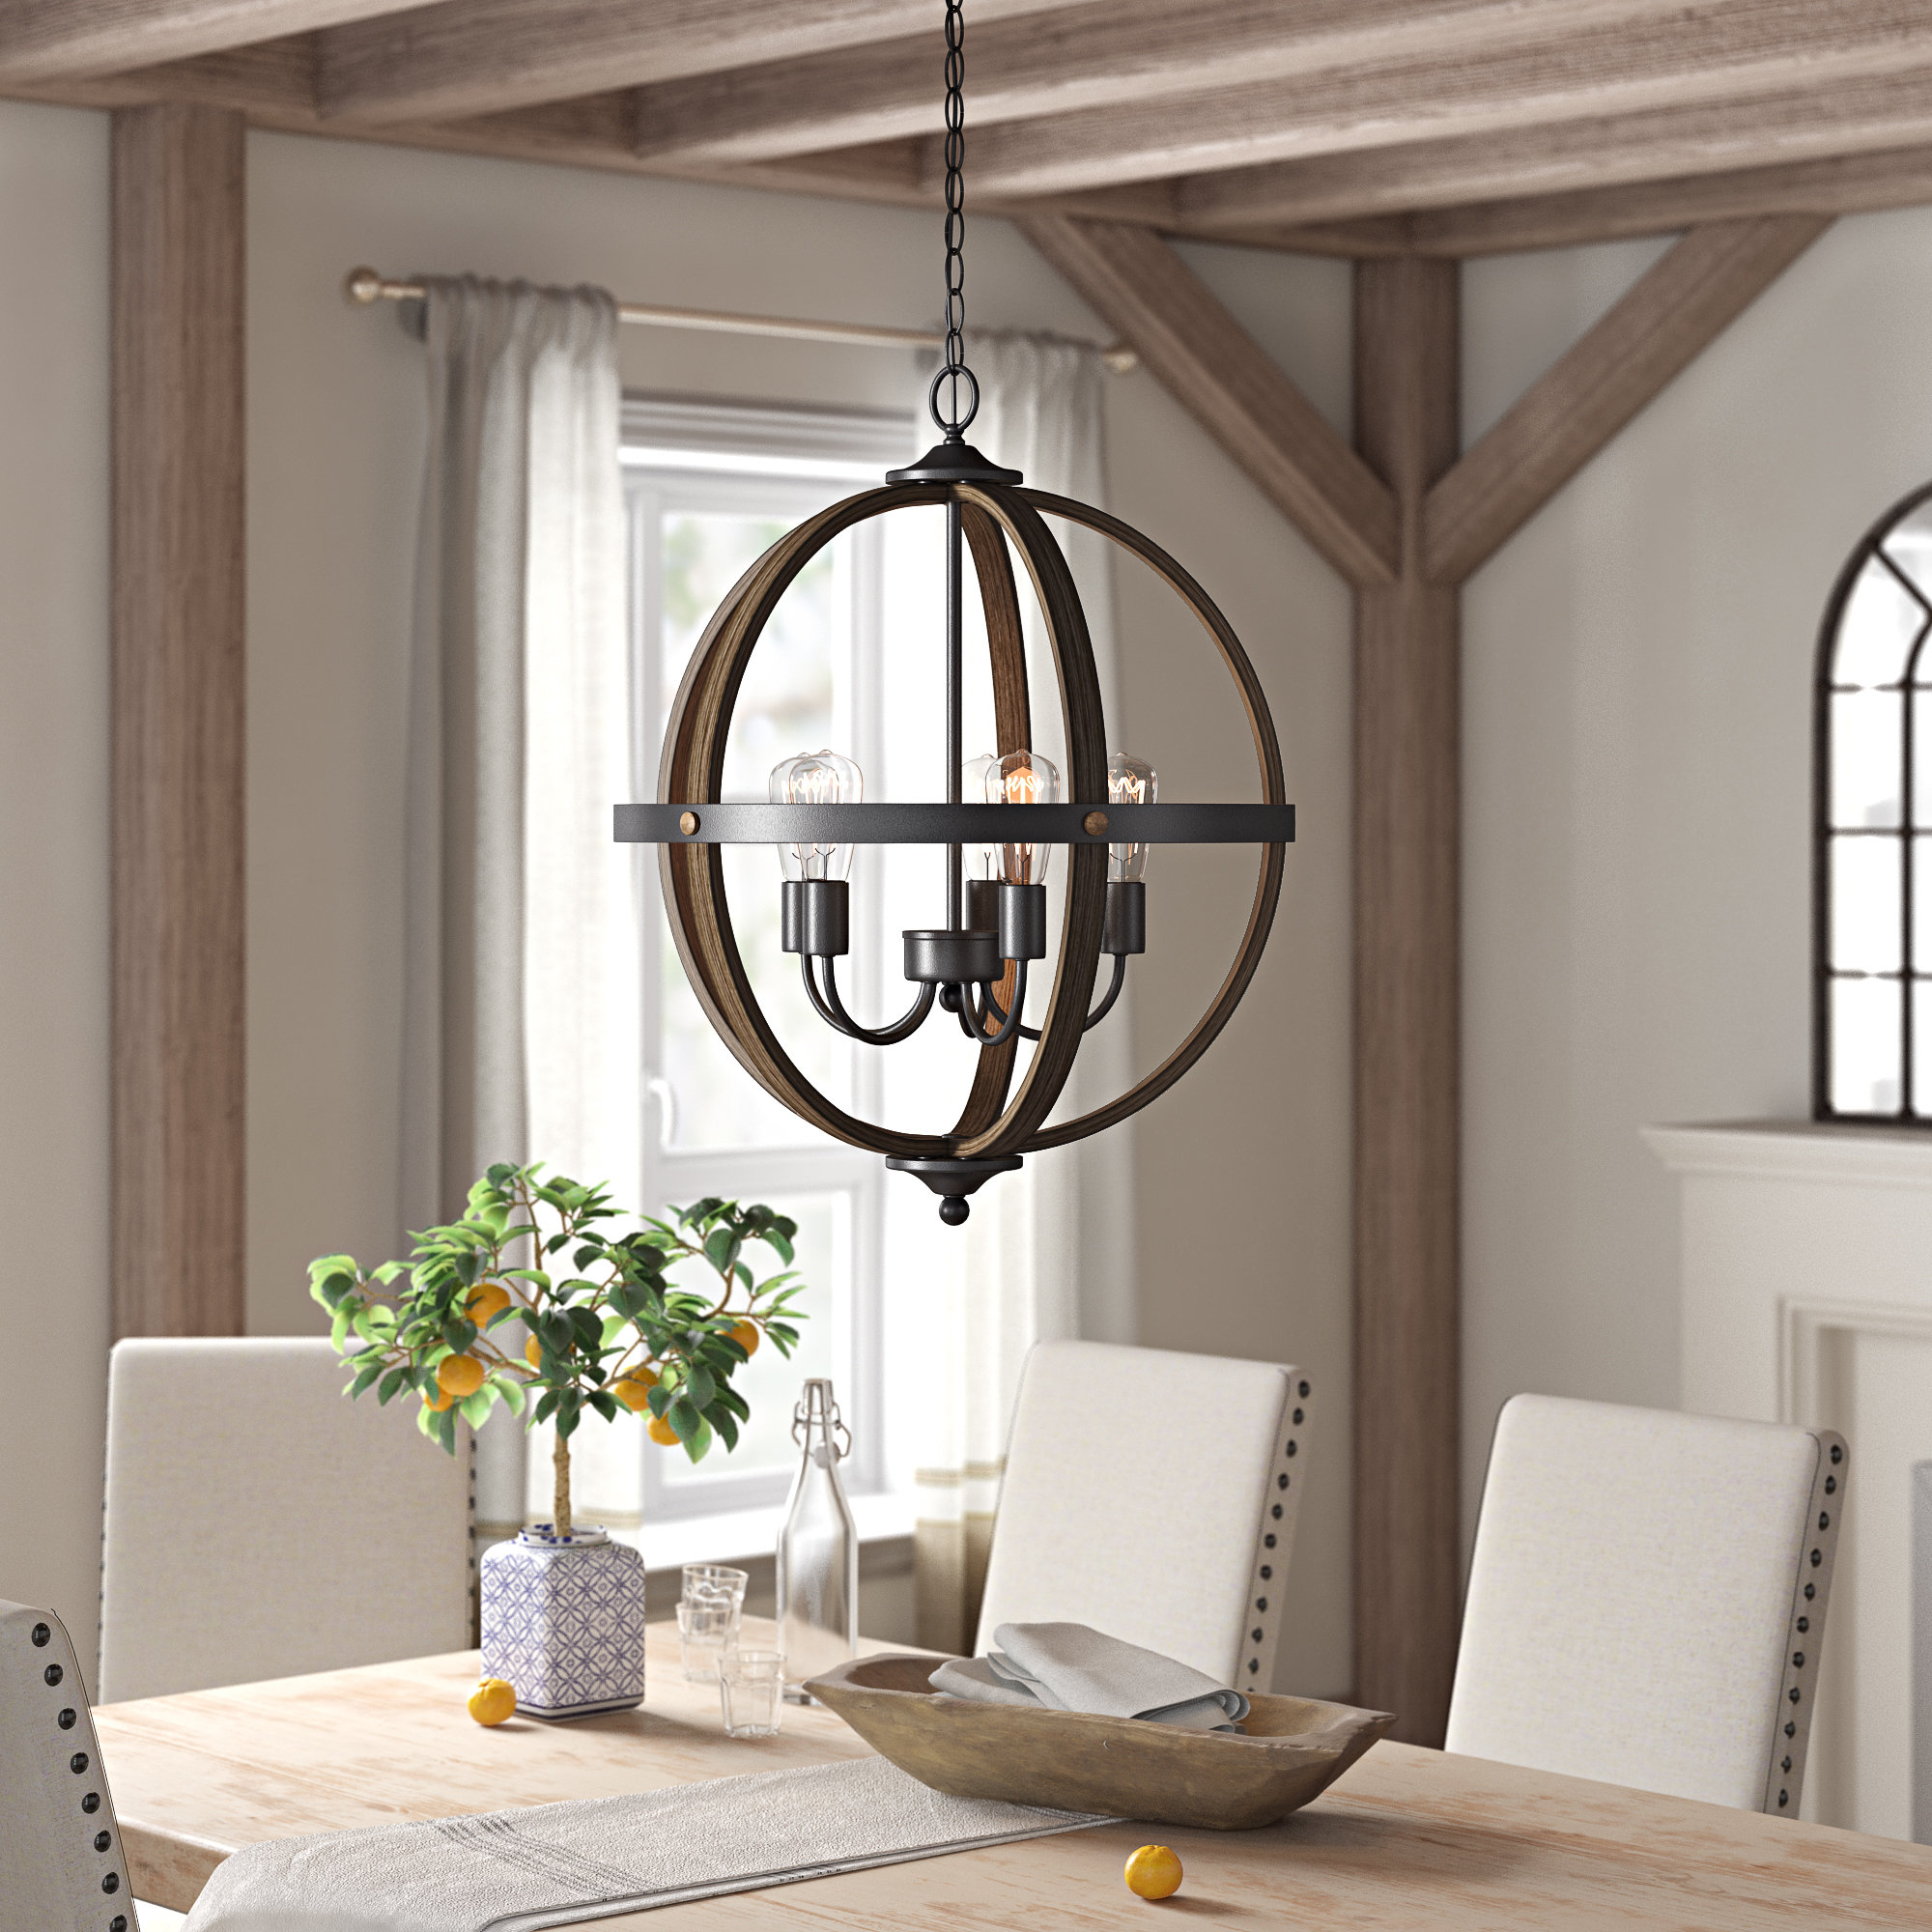 Makeba 5-Light Globe Chandelier with regard to Joon 6-Light Globe Chandeliers (Image 21 of 30)